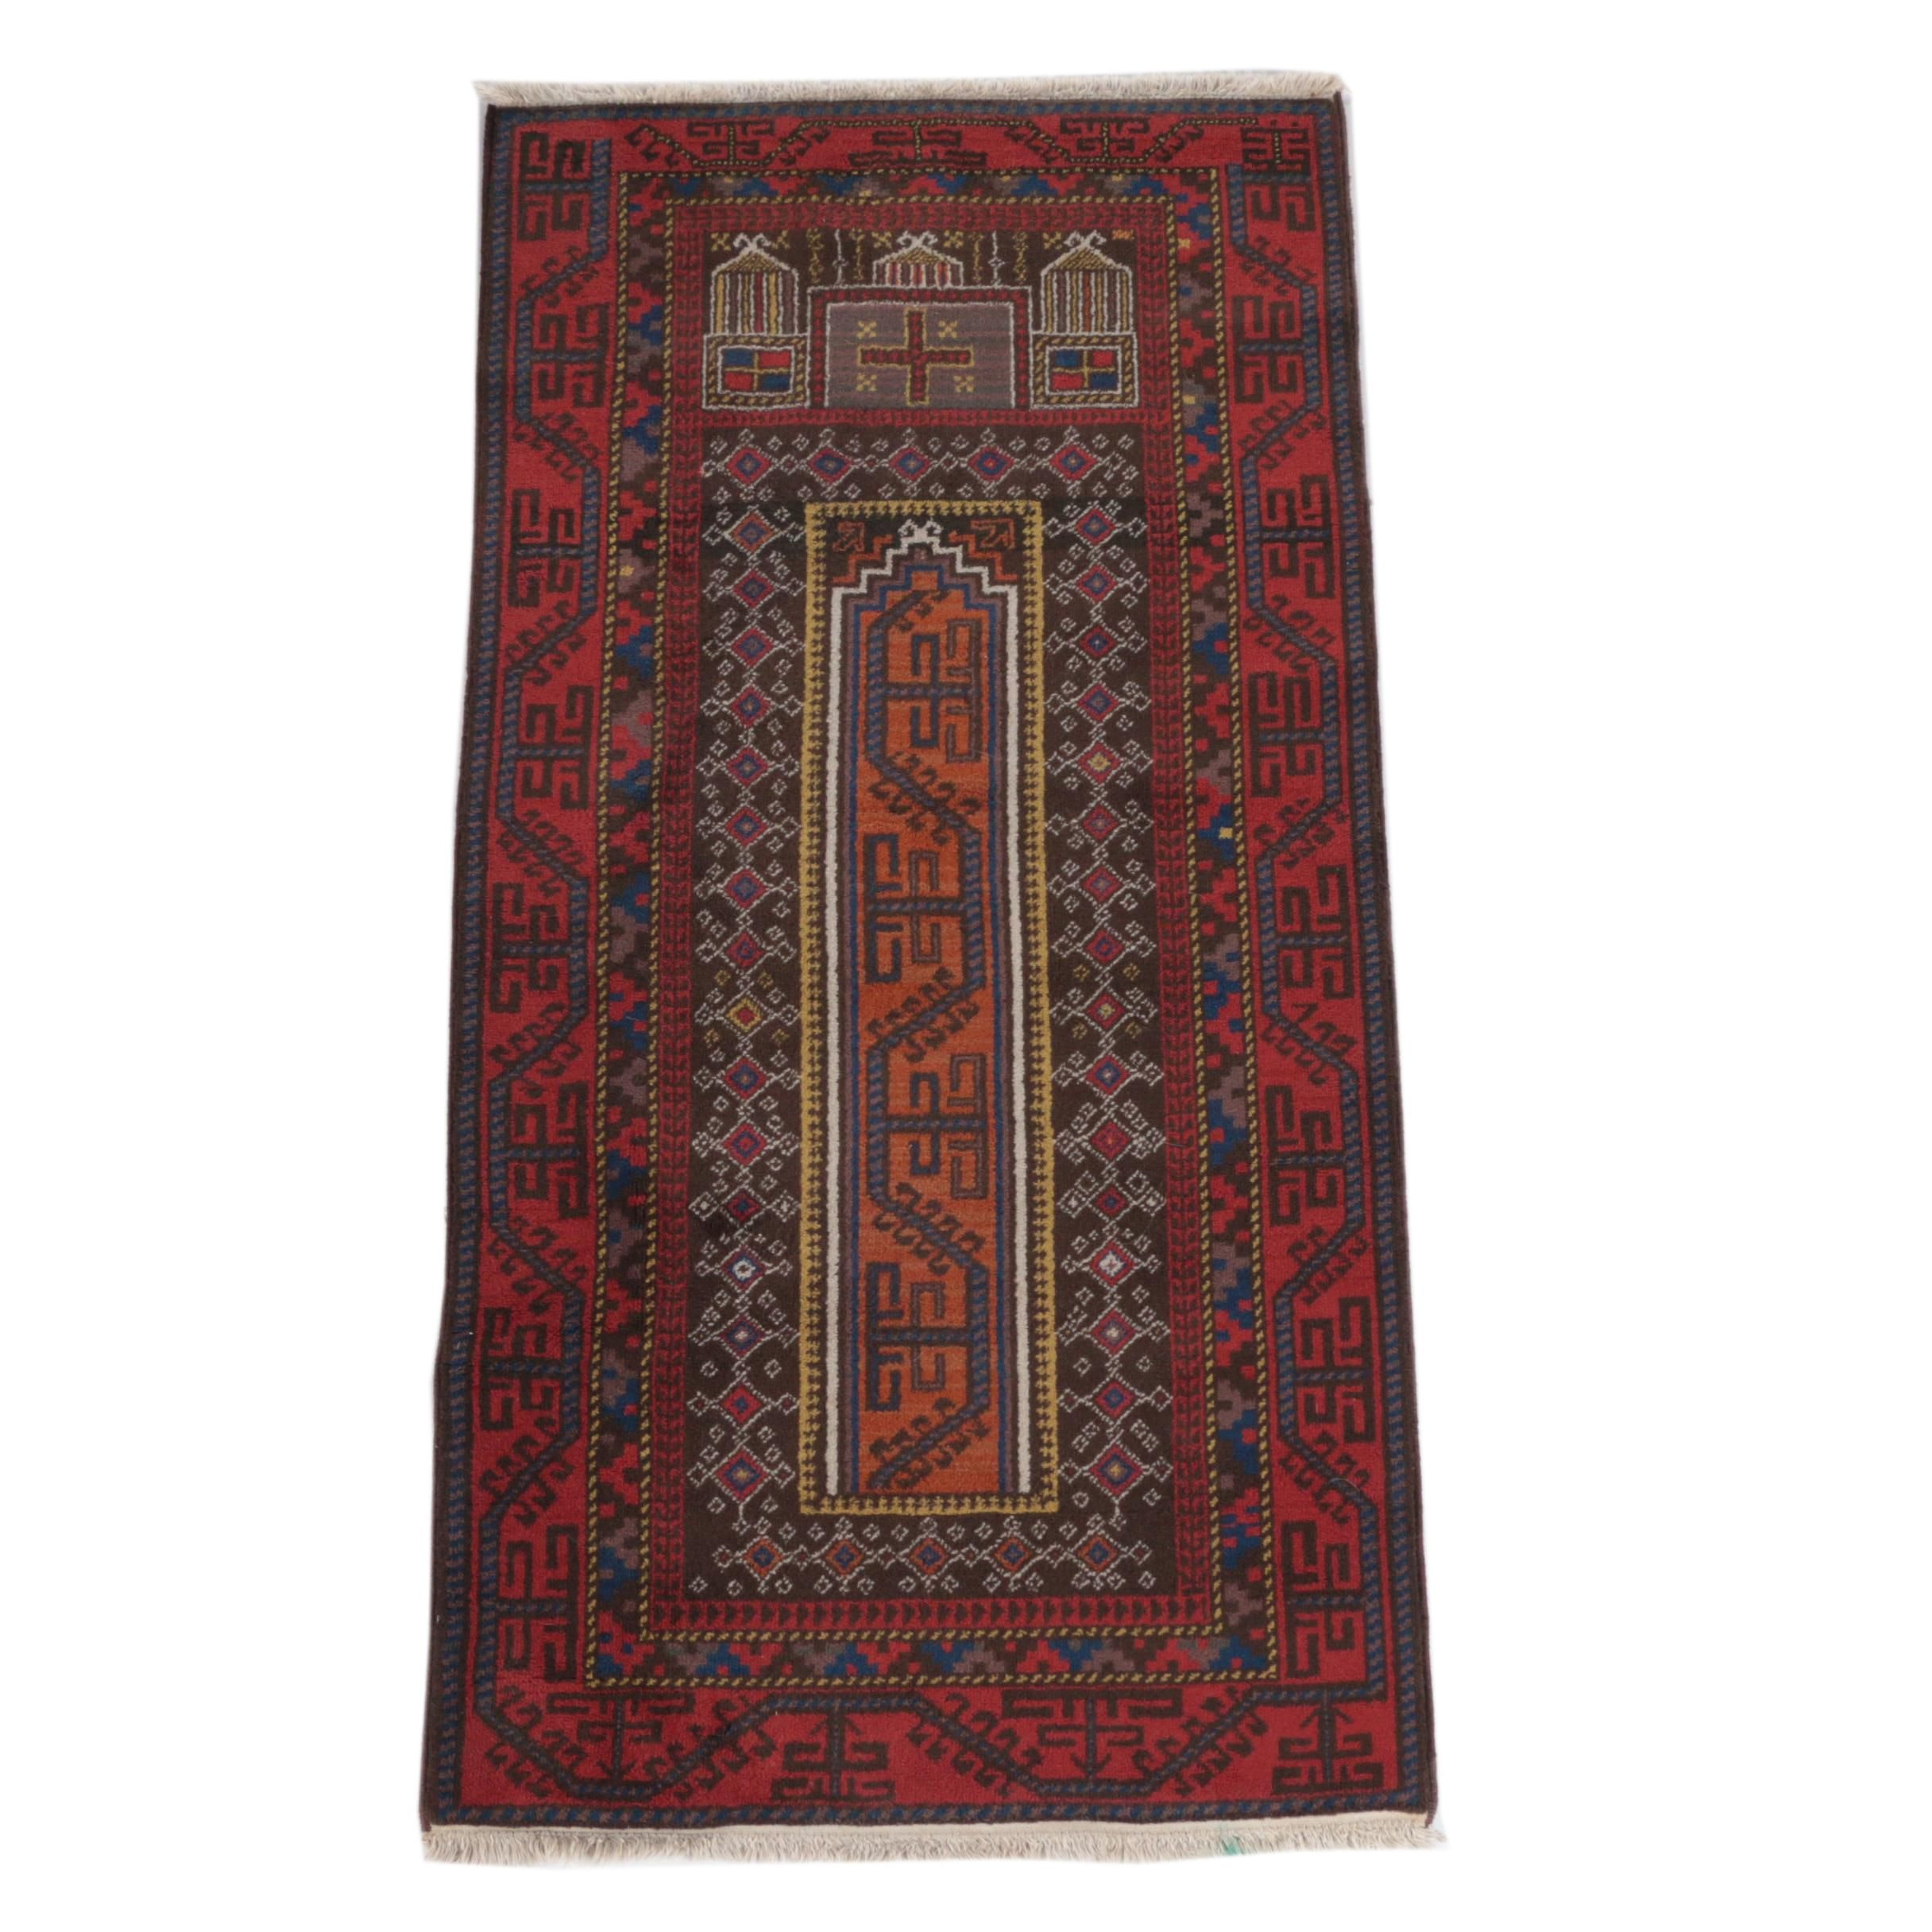 Hand-Knotted Baluch Mosque Prayer Rug